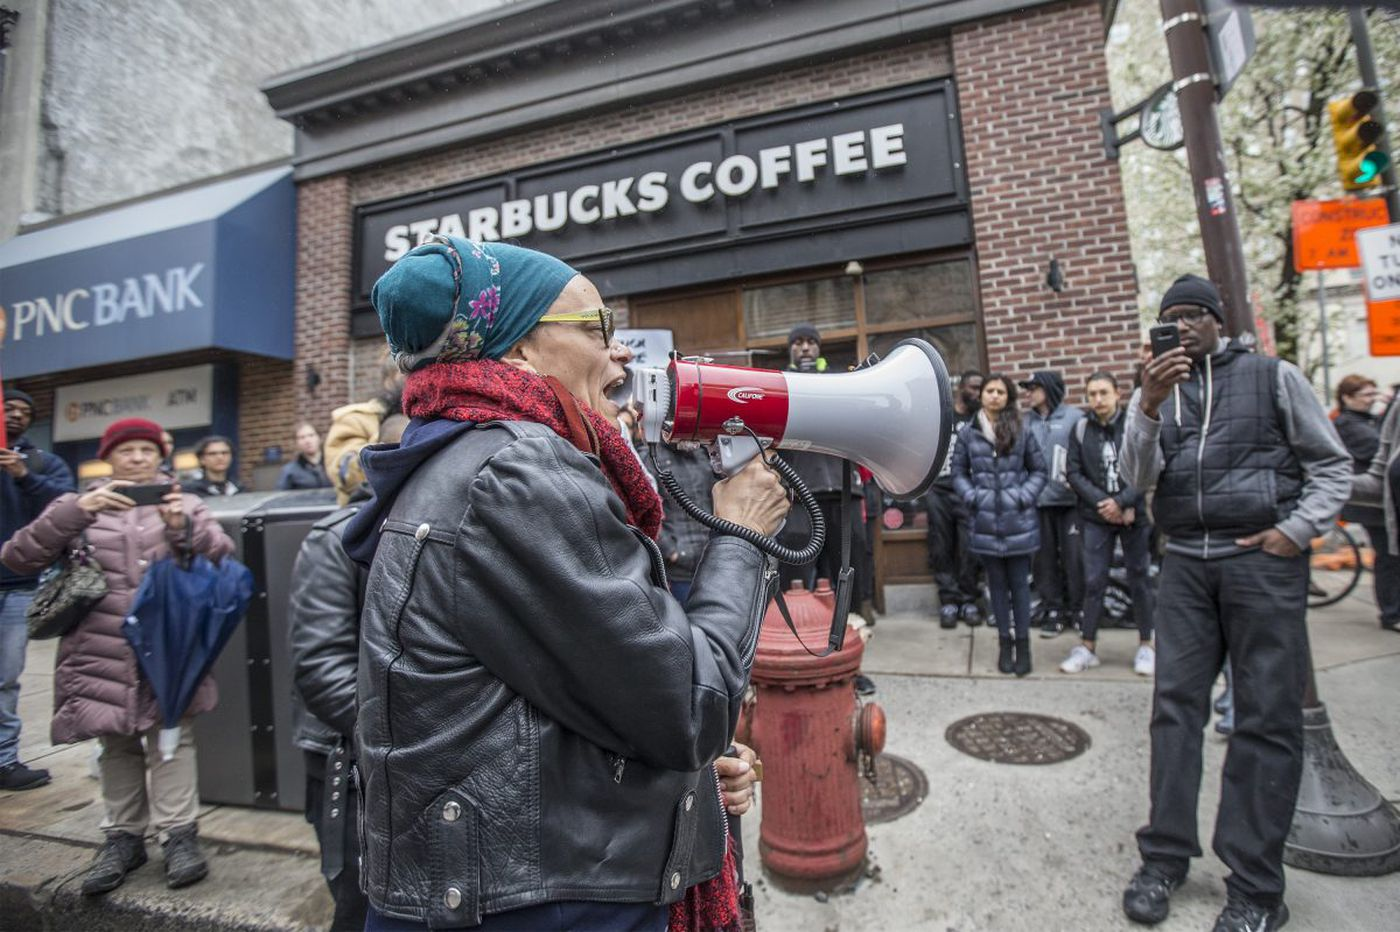 Starbucks episode puts Philly police in national spotlight